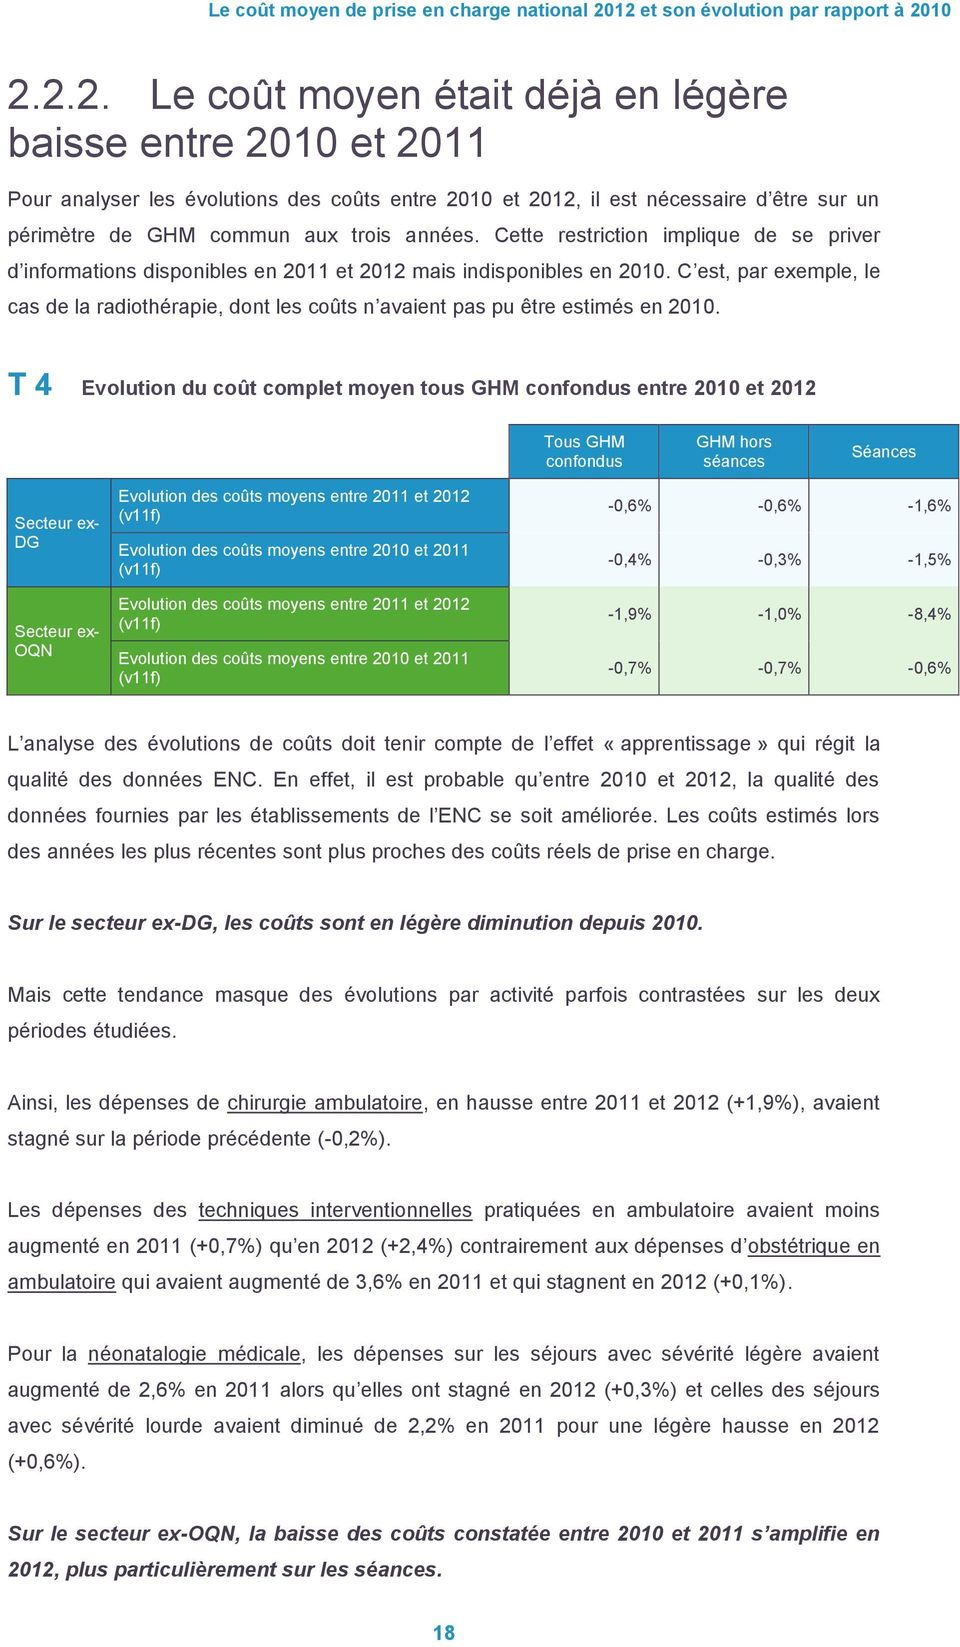 Cette restriction implique de se priver d informations disponibles en 2011 et 2012 mais indisponibles en 2010.